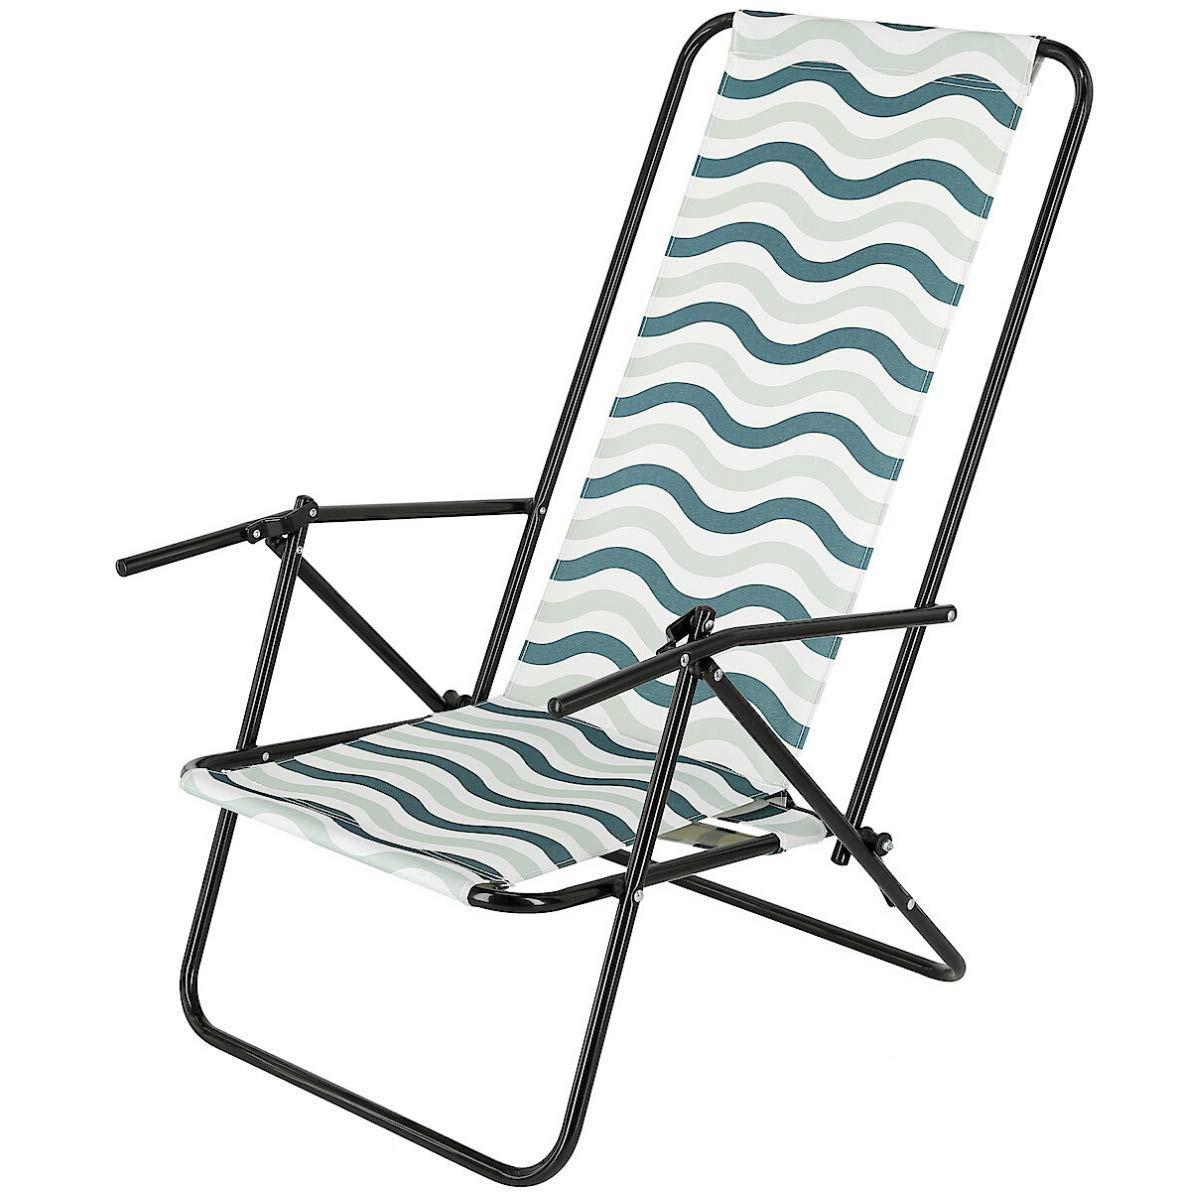 Clas Ohlson Deck Chair Foldable Reclinable Low Seat Garden Deck Chair Beach Chair With Steel Frame Wave Pattern Buy Online In Fiji At Fiji Desertcart Com Productid 206299055